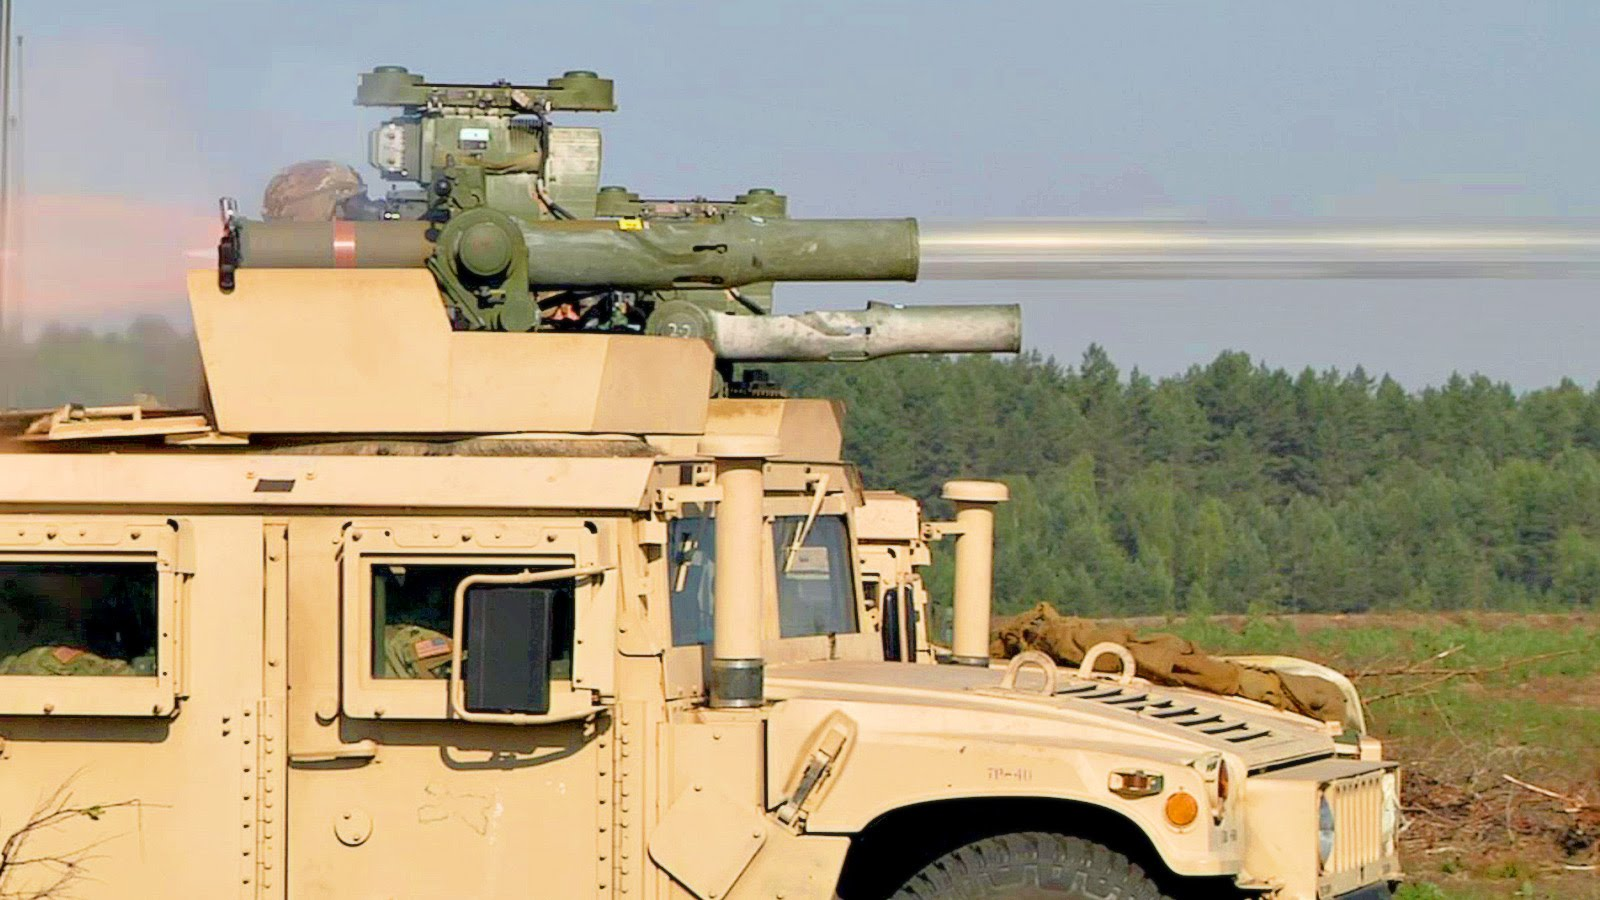 TOW Anti-Tank Missile Live Test